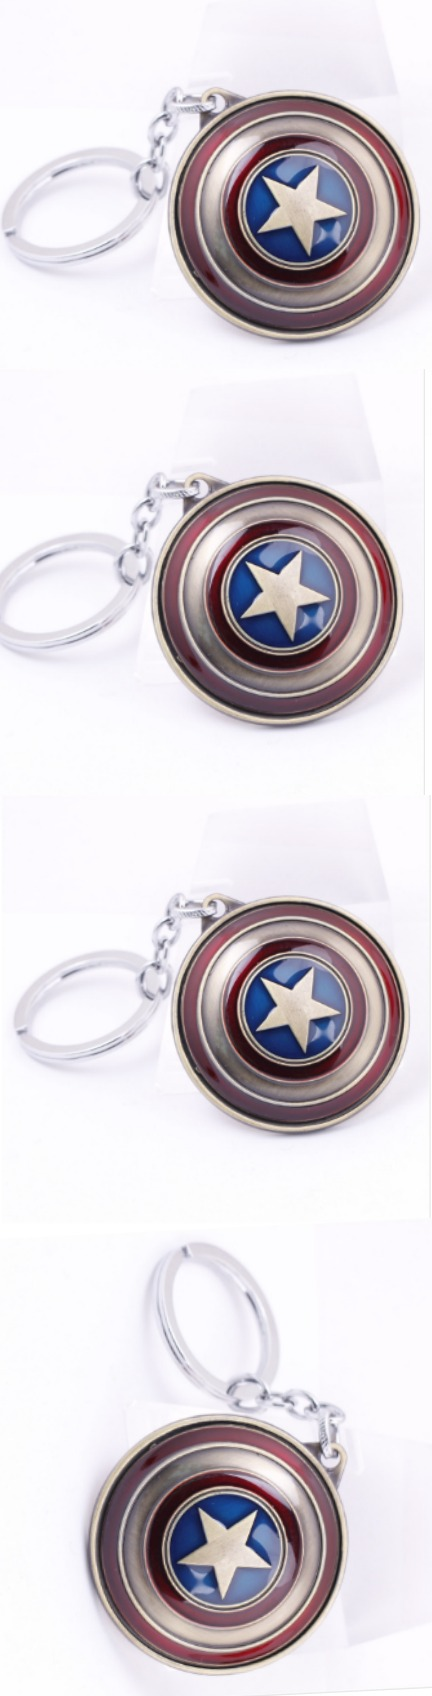 captain america titanium shield star keychain click the image to buy it now or tag someone you want to buy this for captain captain america captain titanium pinterest